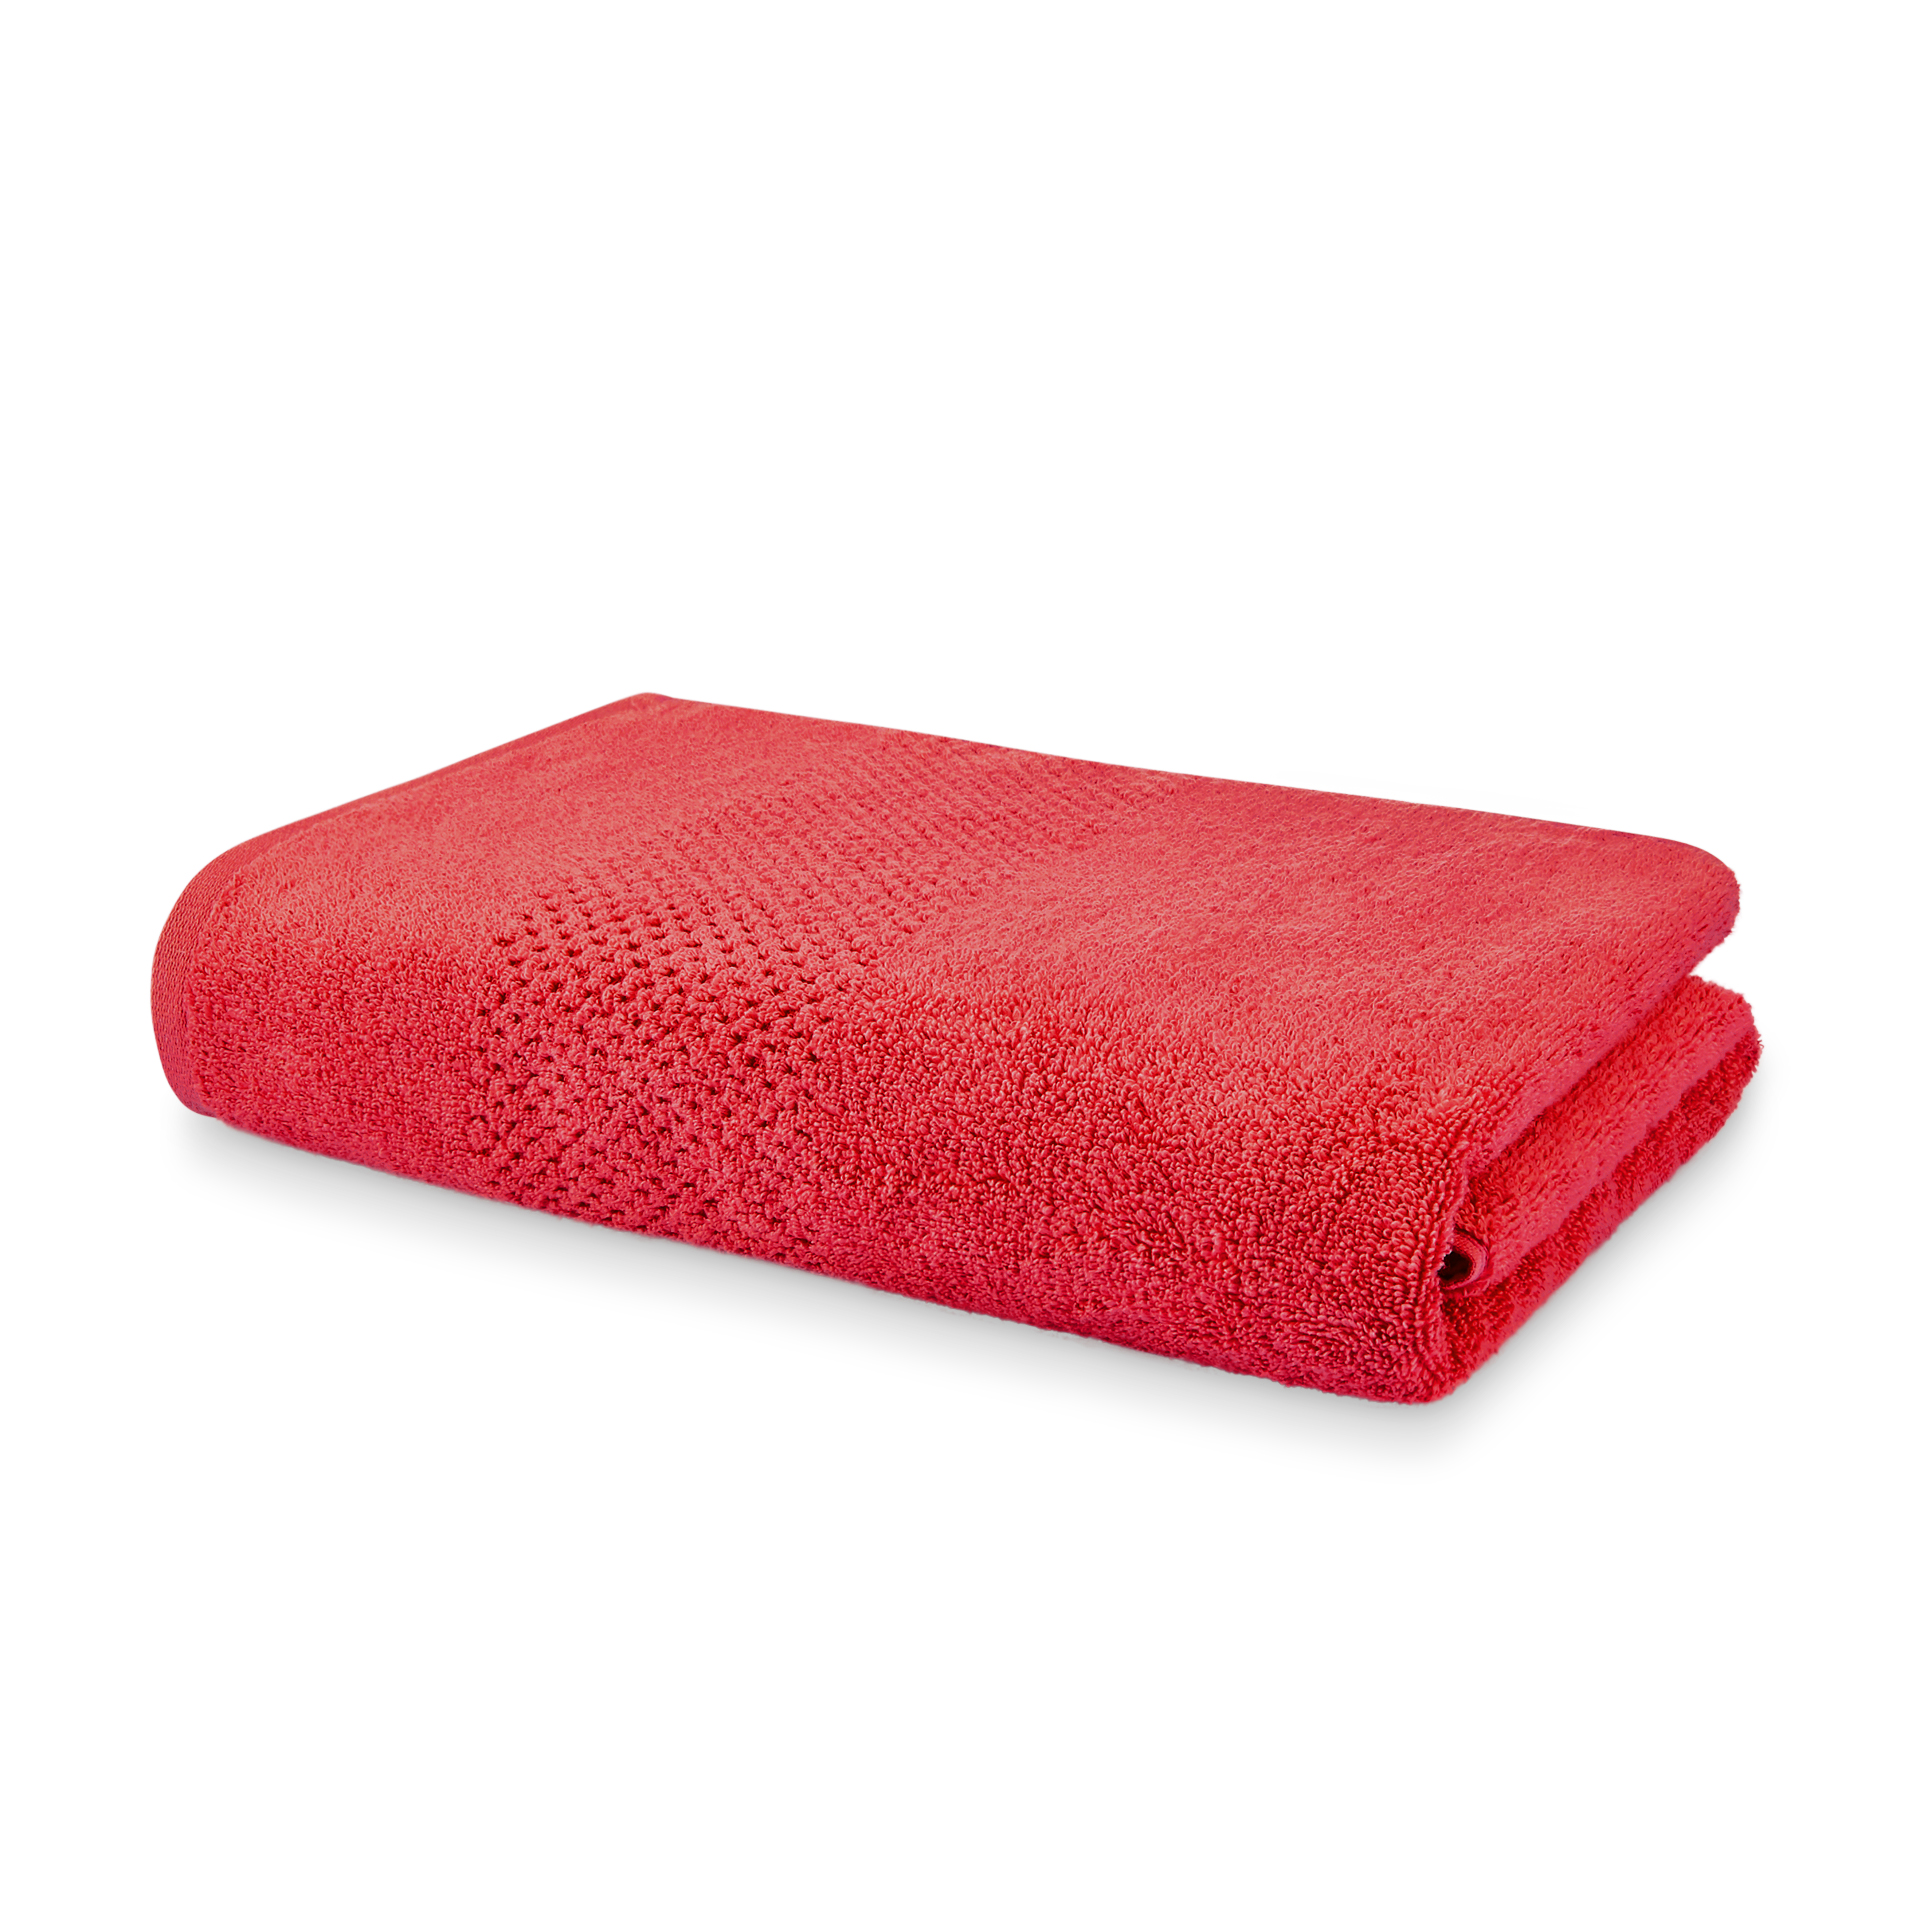 Spaces Essentials 1 Cotton Gsm 1 Bath Towel Cotton Double Bed Sheets in Red Colour by Spaces